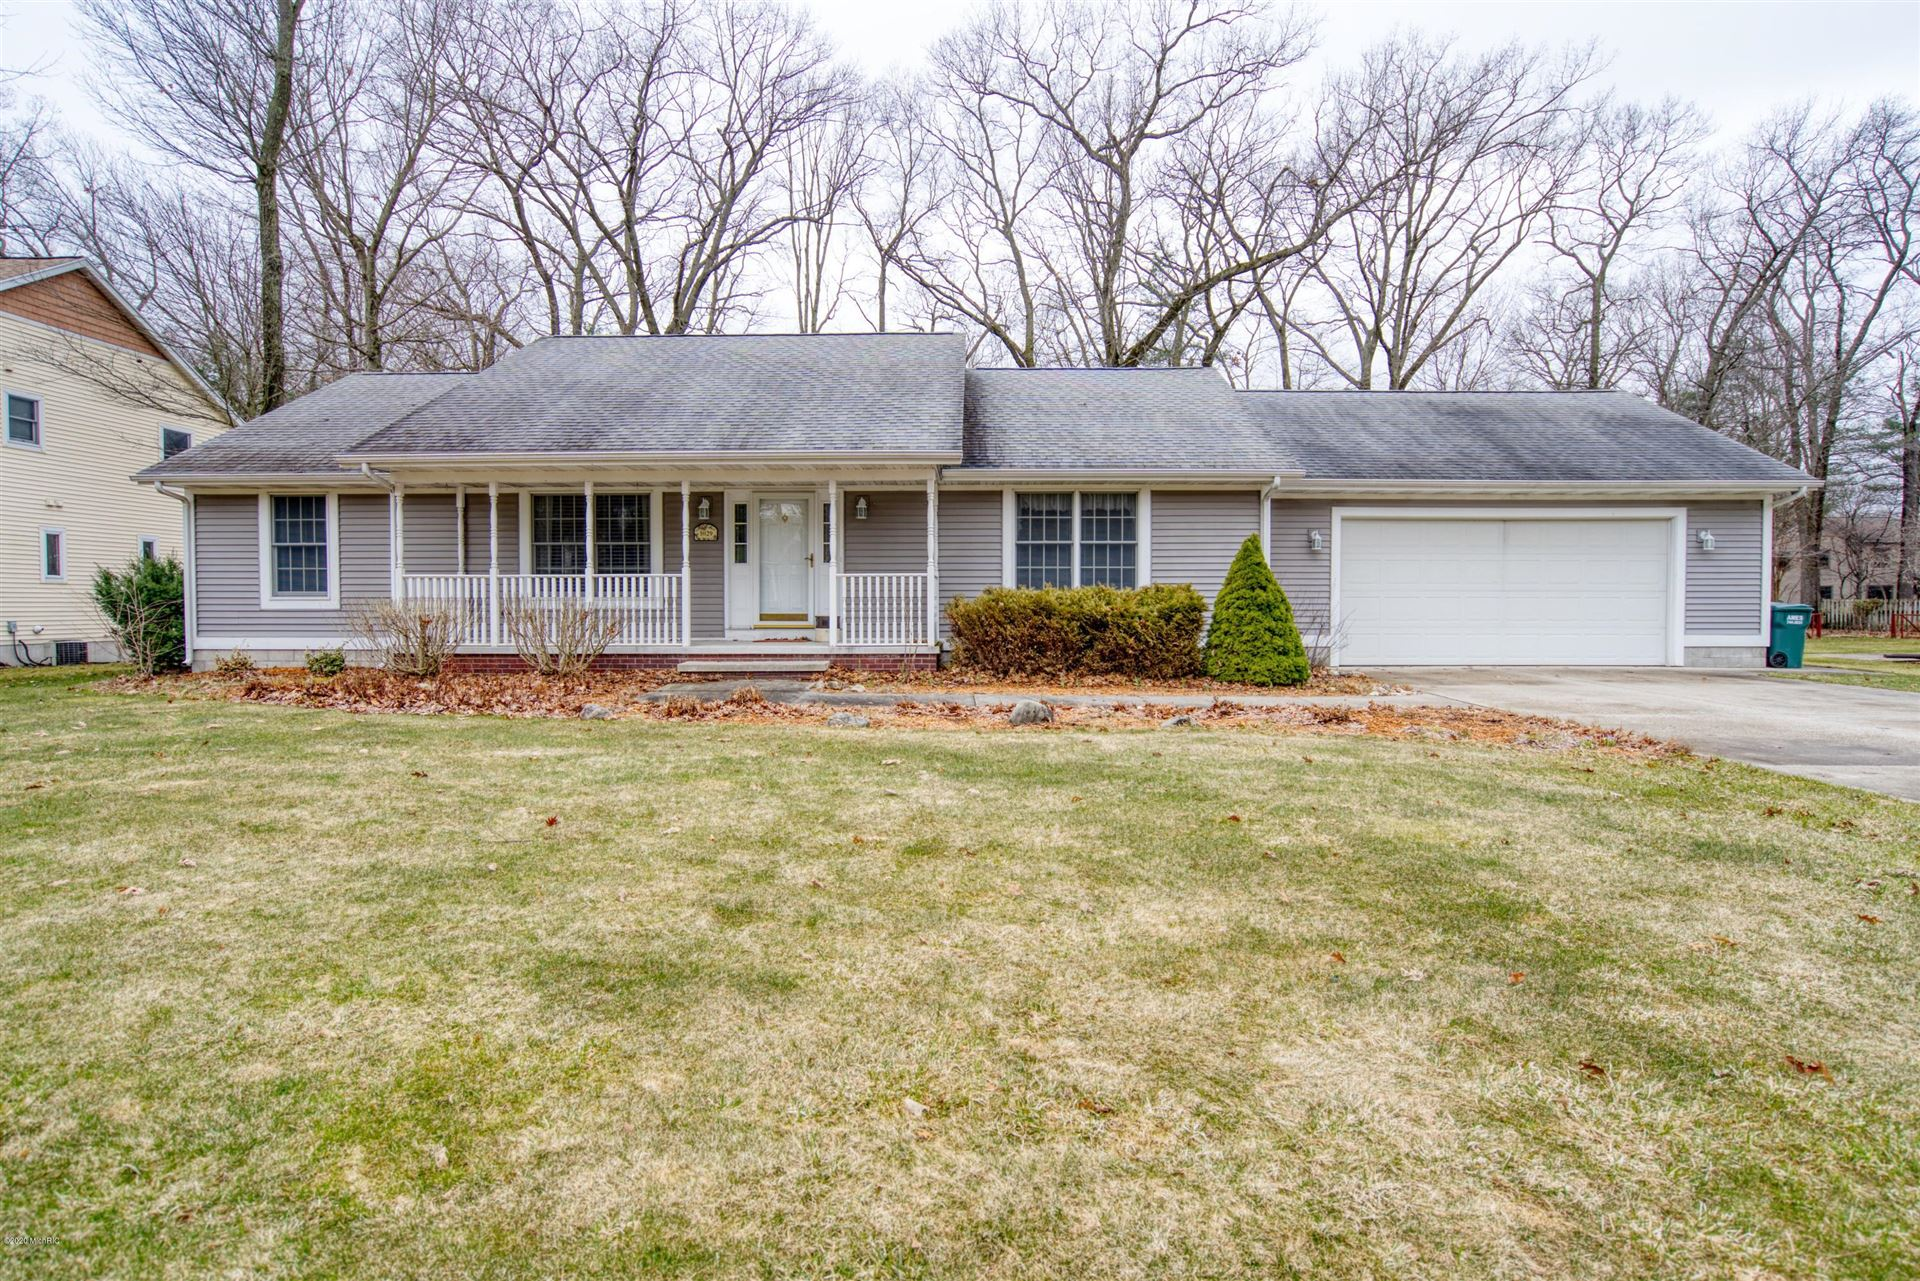 1029 Willshire Drive, Muskegon, MI 49445 - MLS#: 20011299